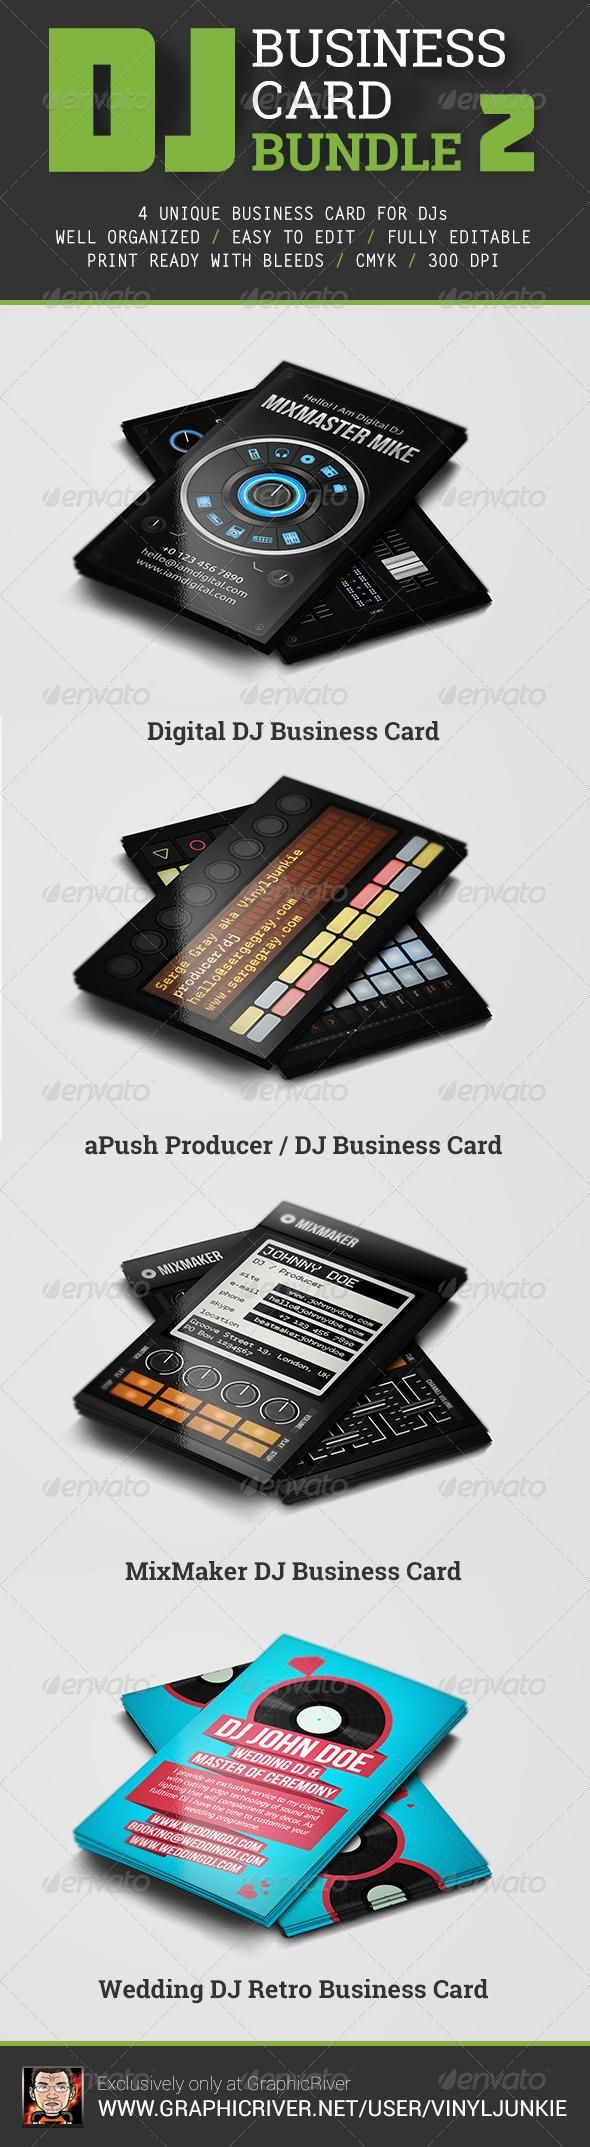 Wonderful Dj Business Card Gallery - Business Card Ideas - etadam.info